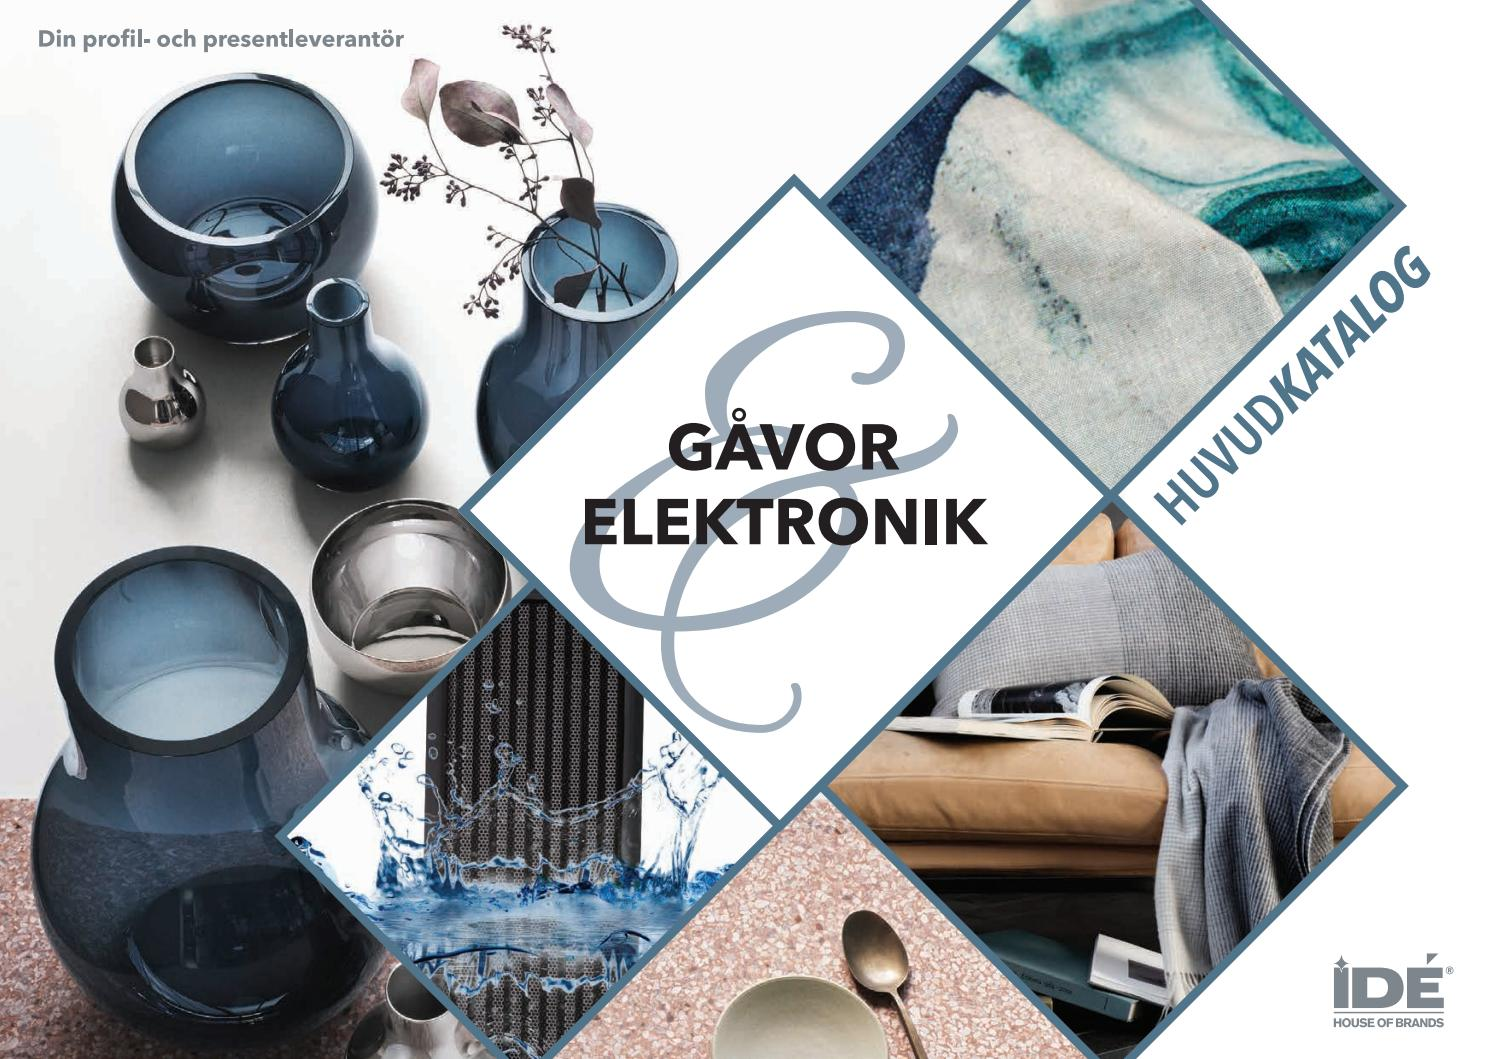 IDE_GÃ¥vakatalog_2014_se by IDE House of Brands - issuu